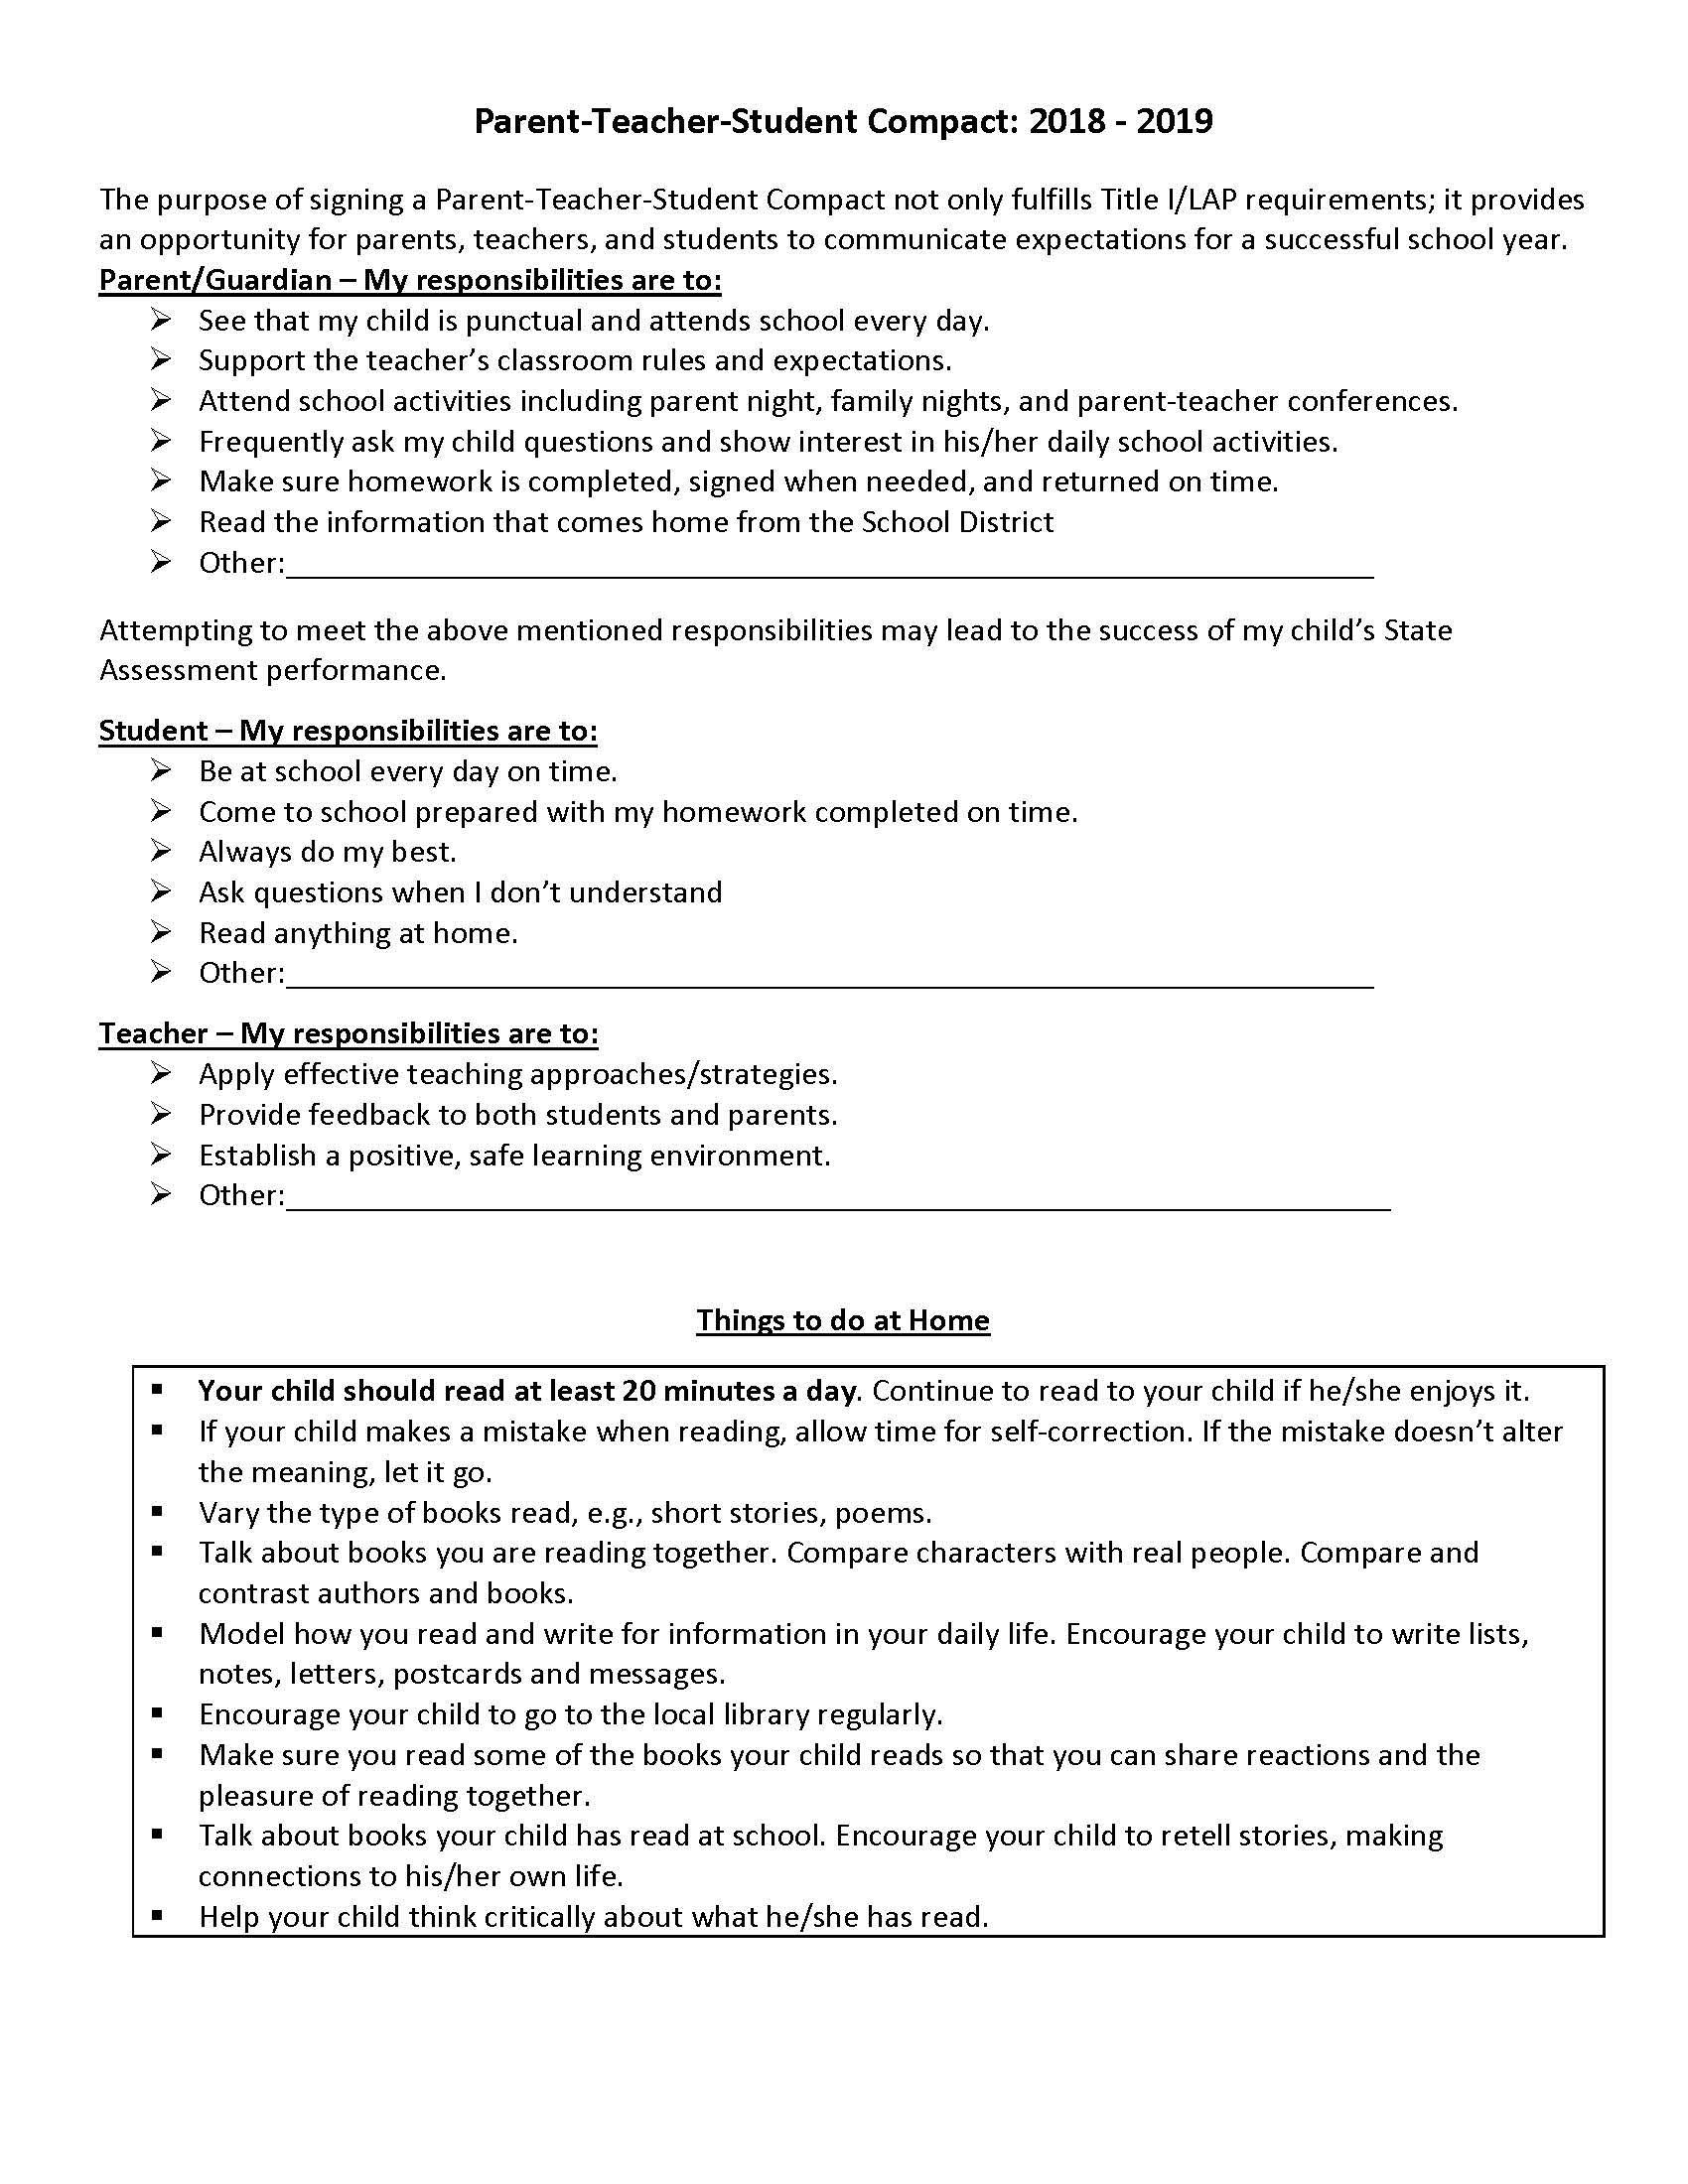 Family Resources – Student and Parents Resources – Pasadena